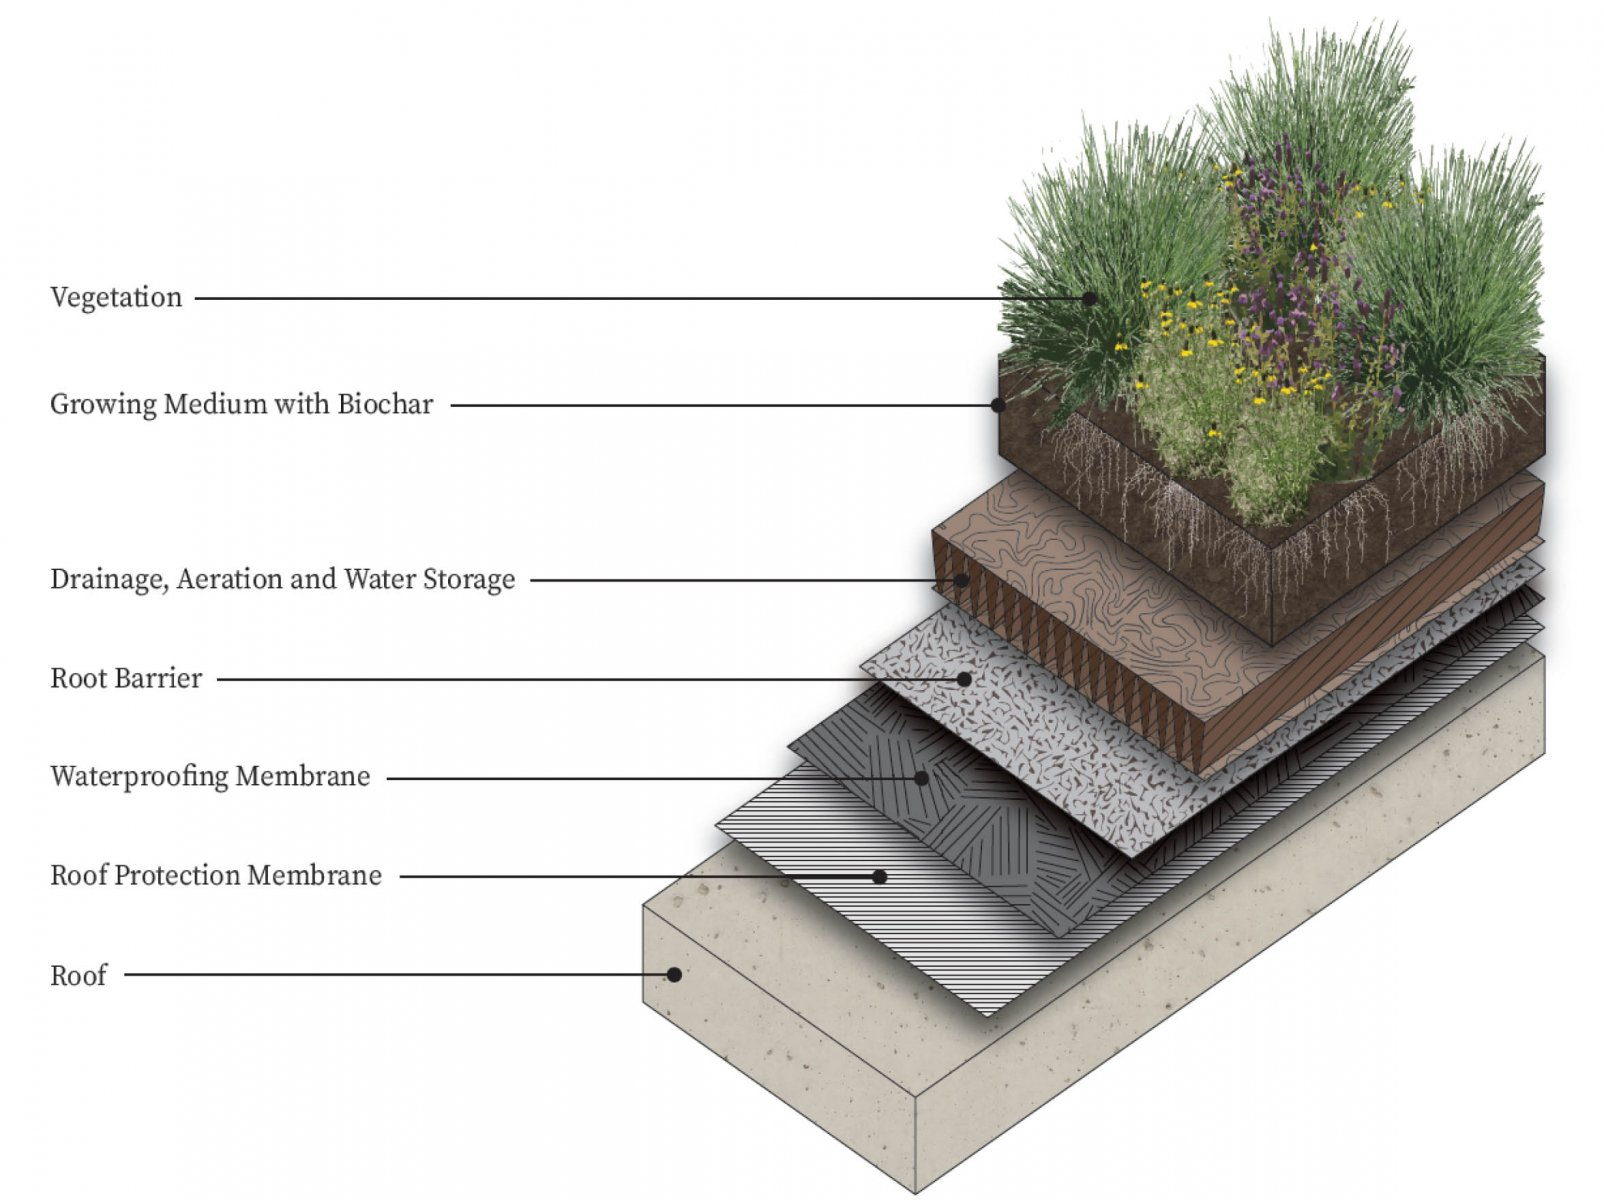 Figure of Green Roof layers